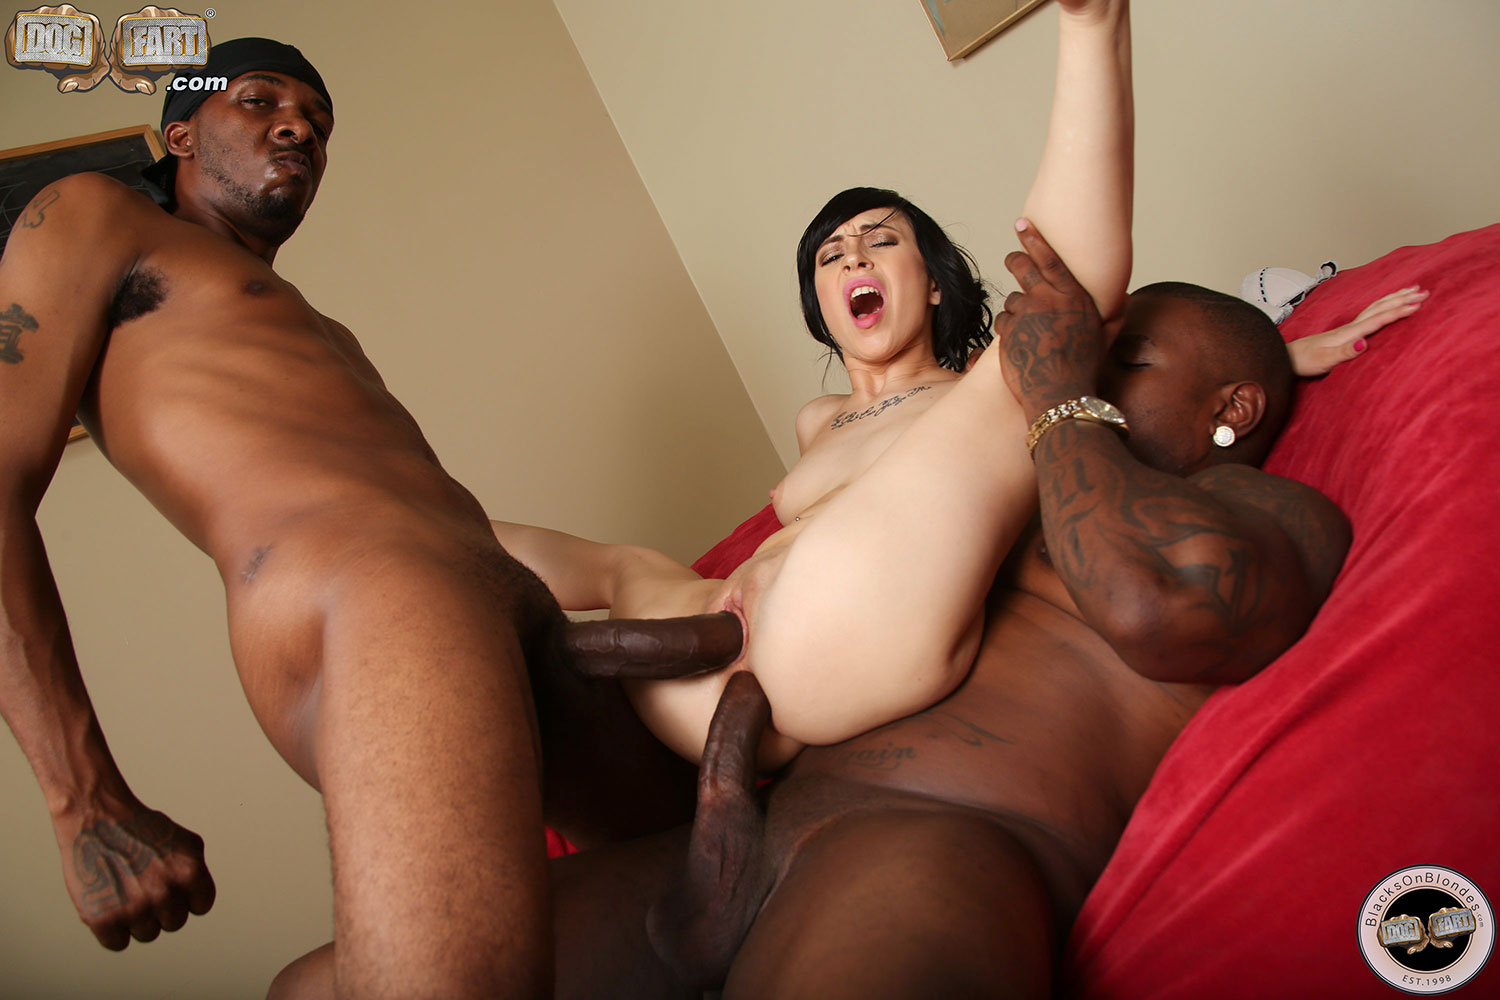 Bbc anal with mandingo makes raven hart squirt